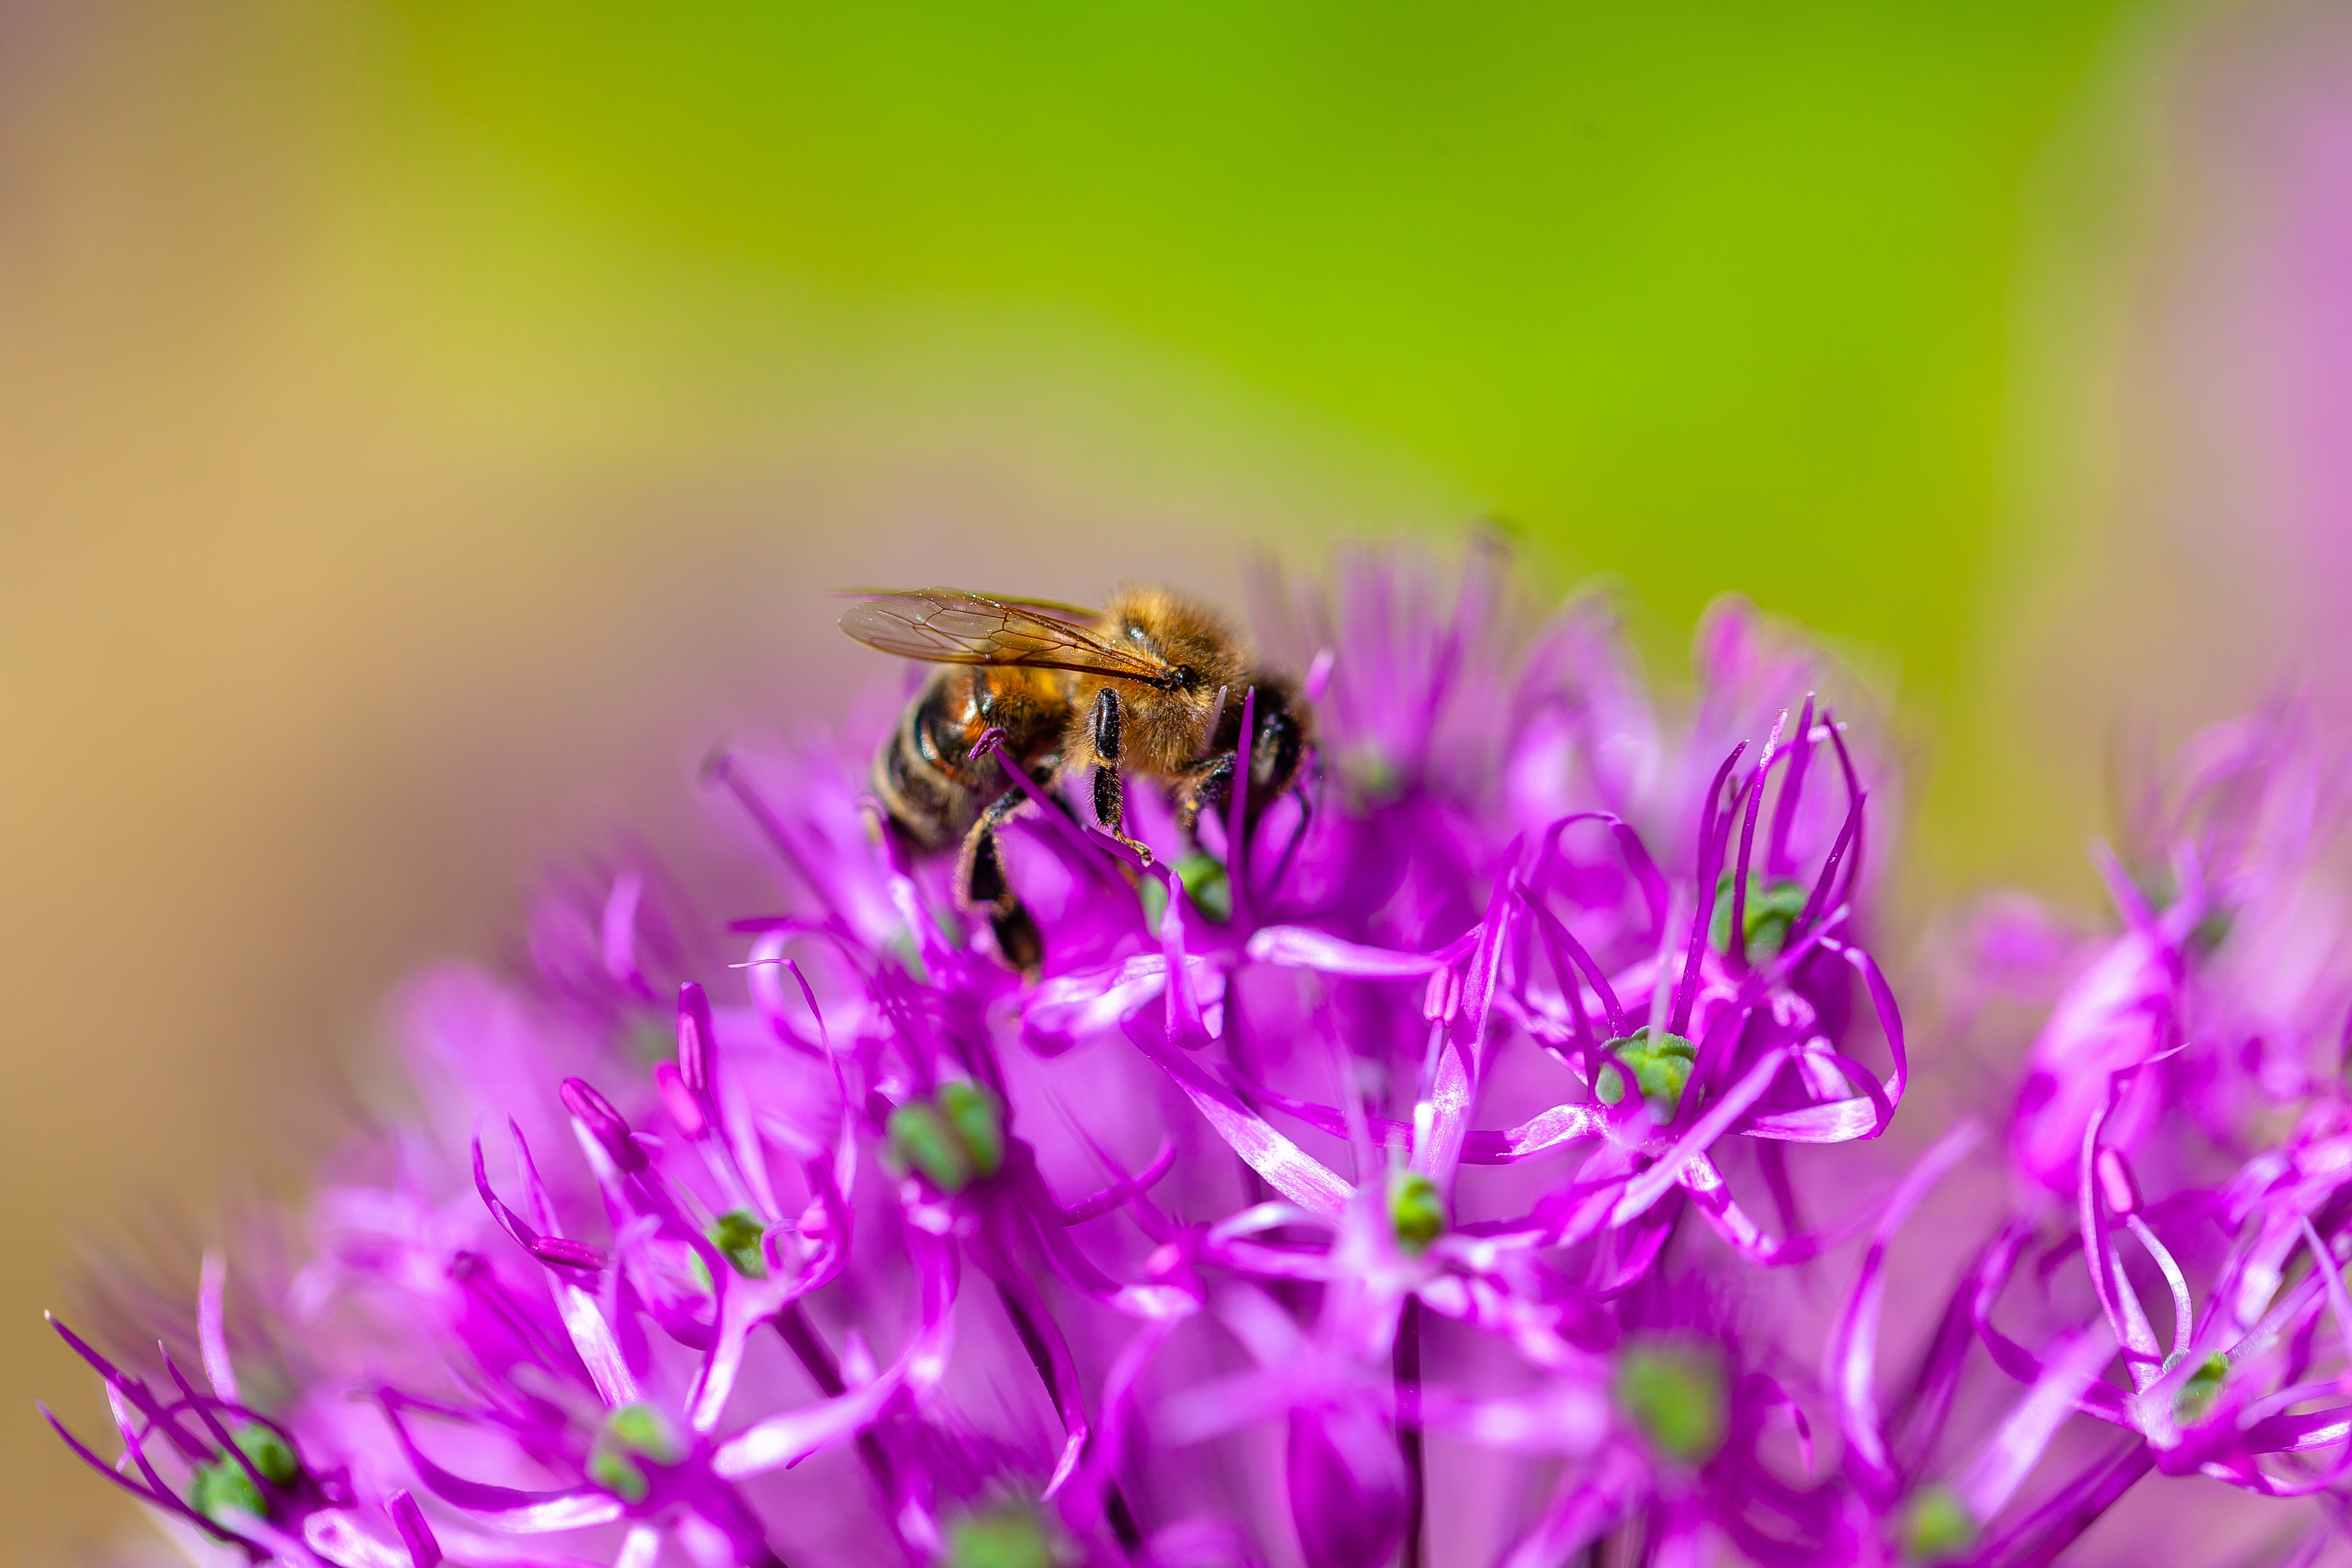 closeup photo of bee perched on pink flower